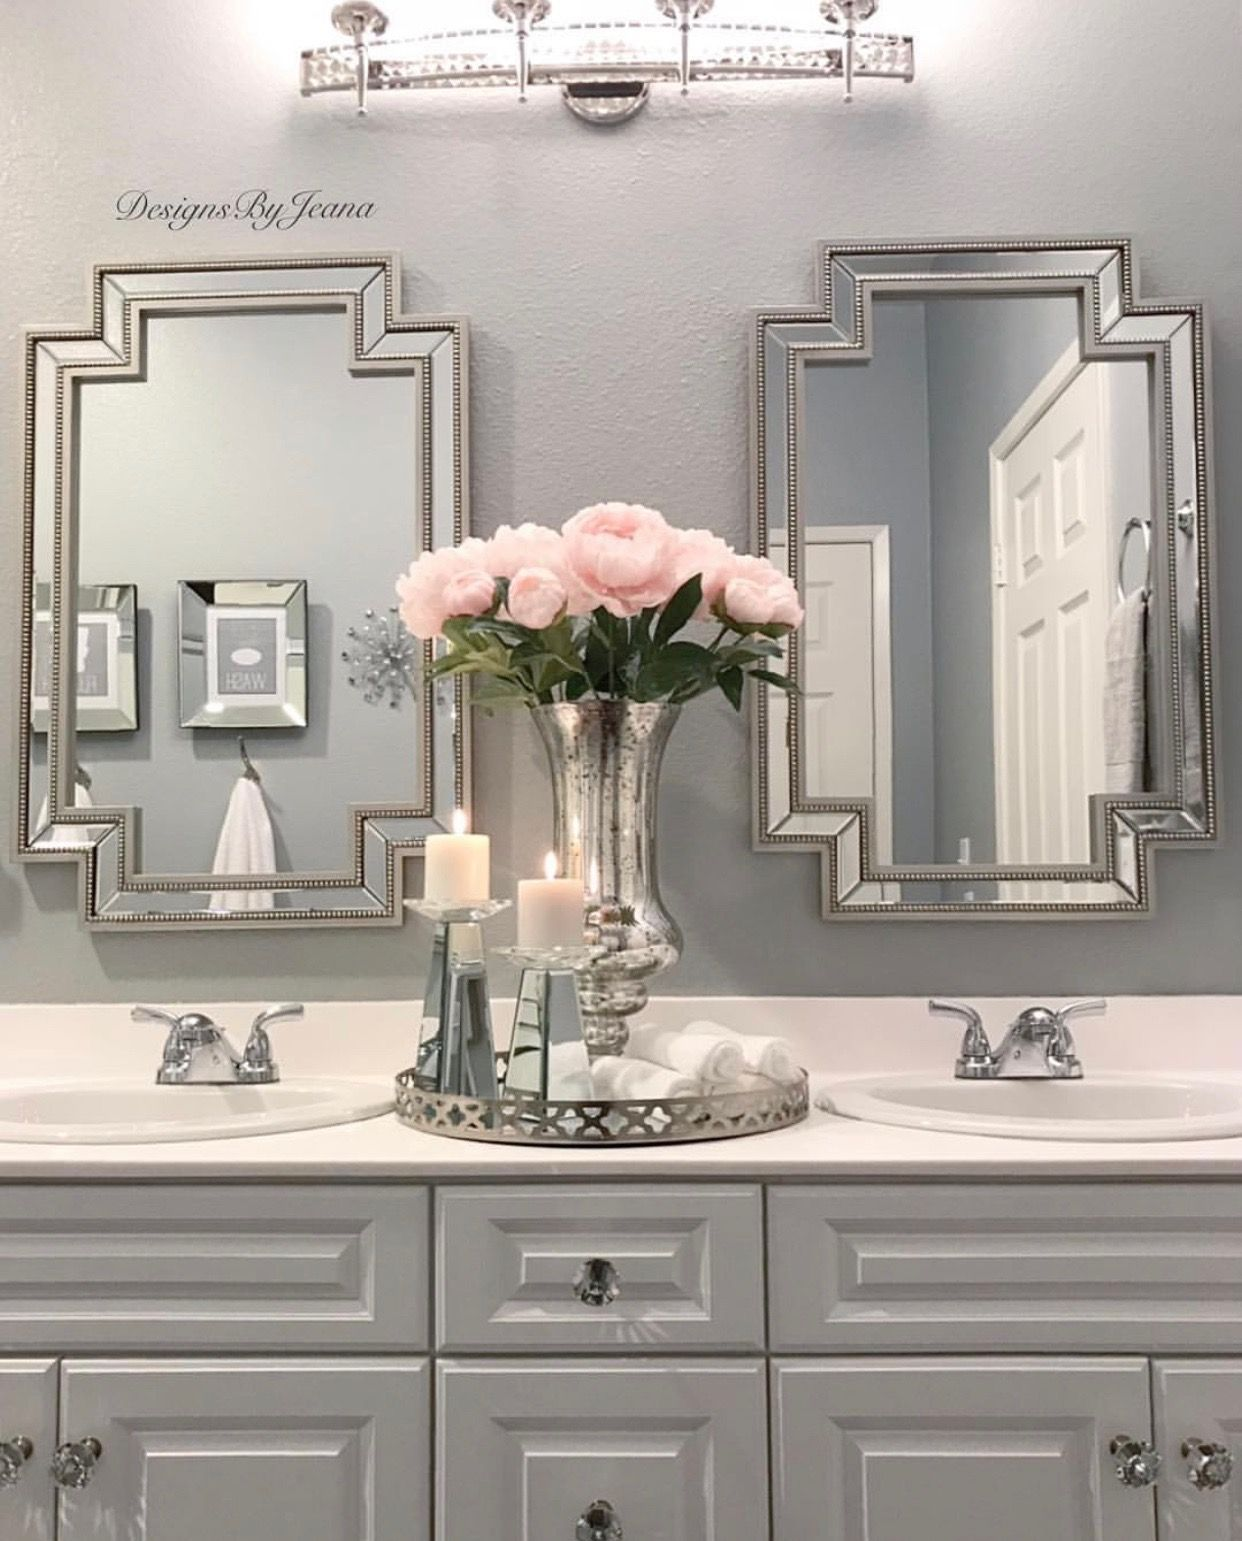 Blue And White Bathroom Accessories Navy And White Bathroom Accessories Gray And Pink Bathroom Accessories Restroom Decor Glamorous Bathroom Bathroom Decor